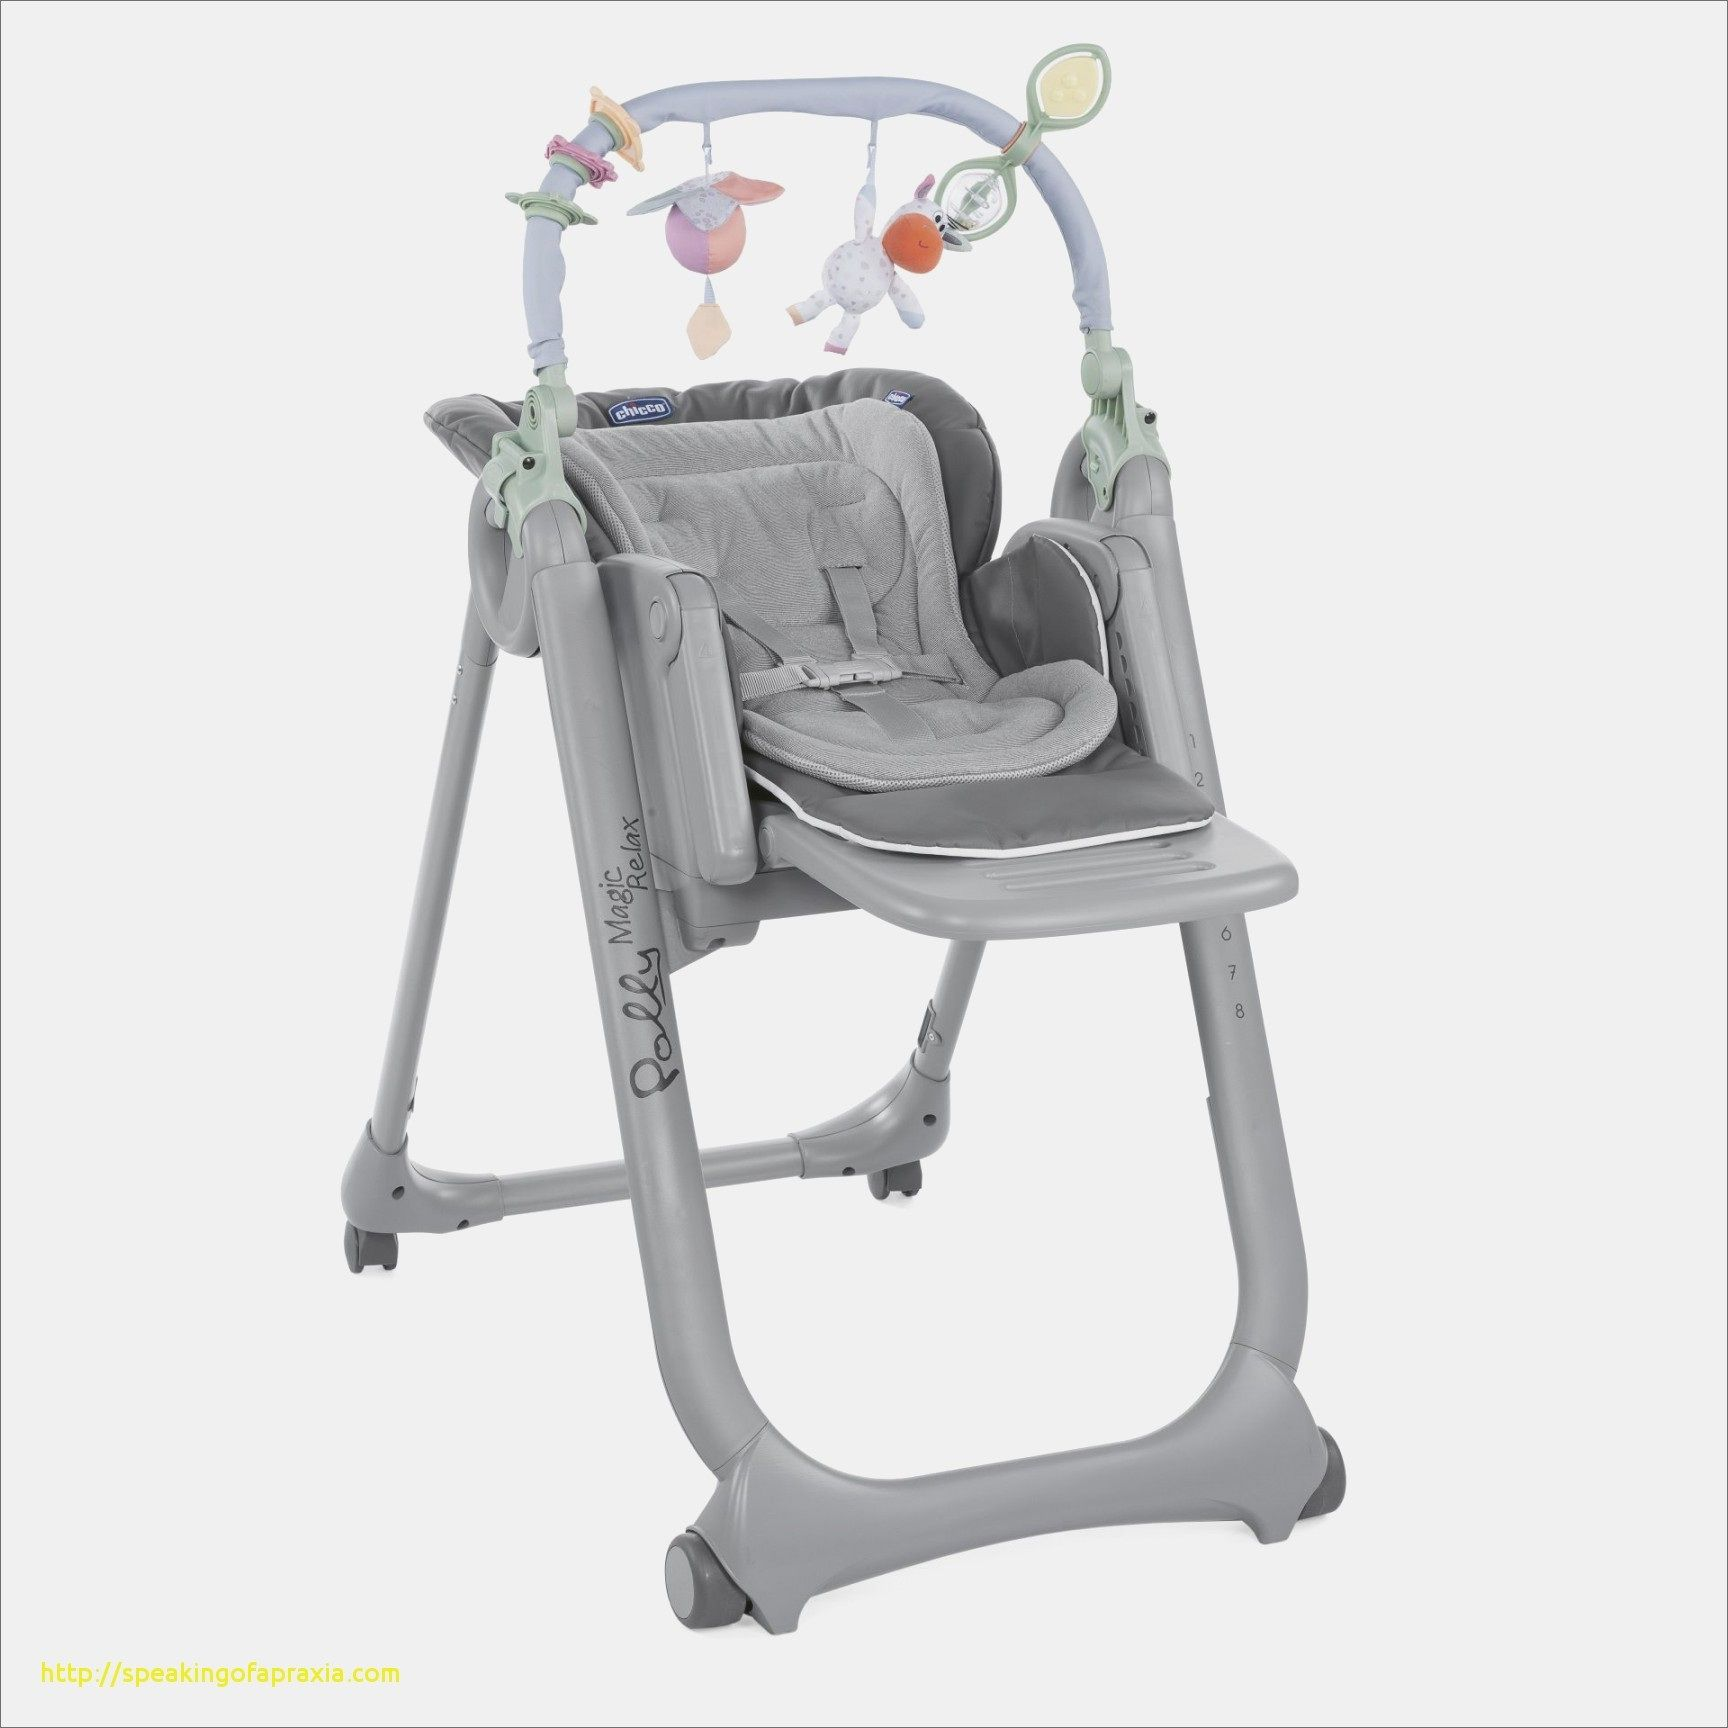 55 Chaise Chicco Check More At Https Leonstafford Com Chaise Chicco High Chair Baby High Chair Chair